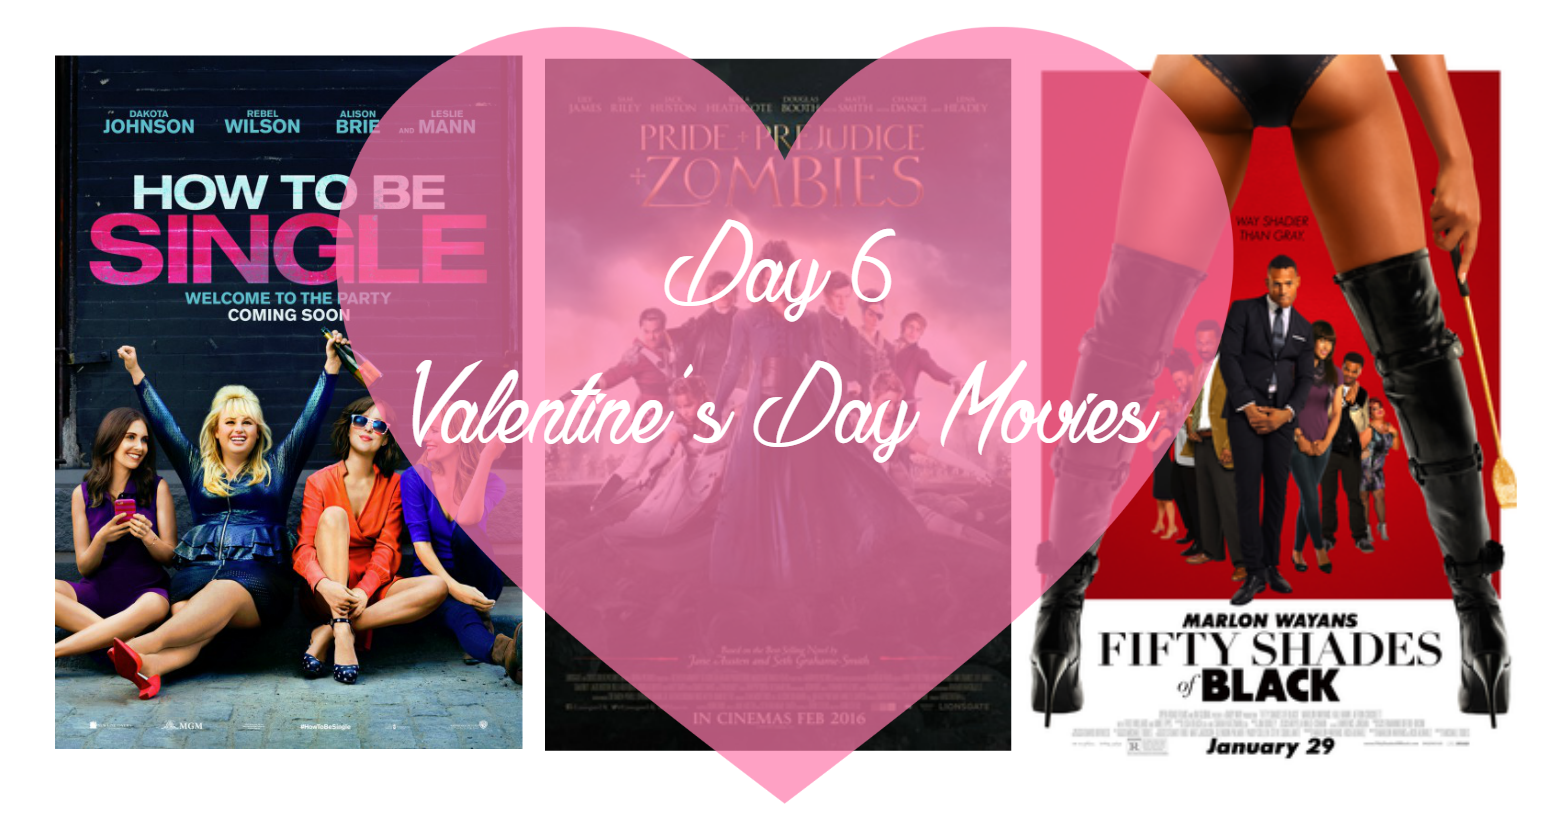 10 days of valentines day 6 valentines movies 2016 hi iris how to be single pride prejudice and zombies and fifty shades of black are some of the popular movies out there right now and all 3 have interesting themes ccuart Images